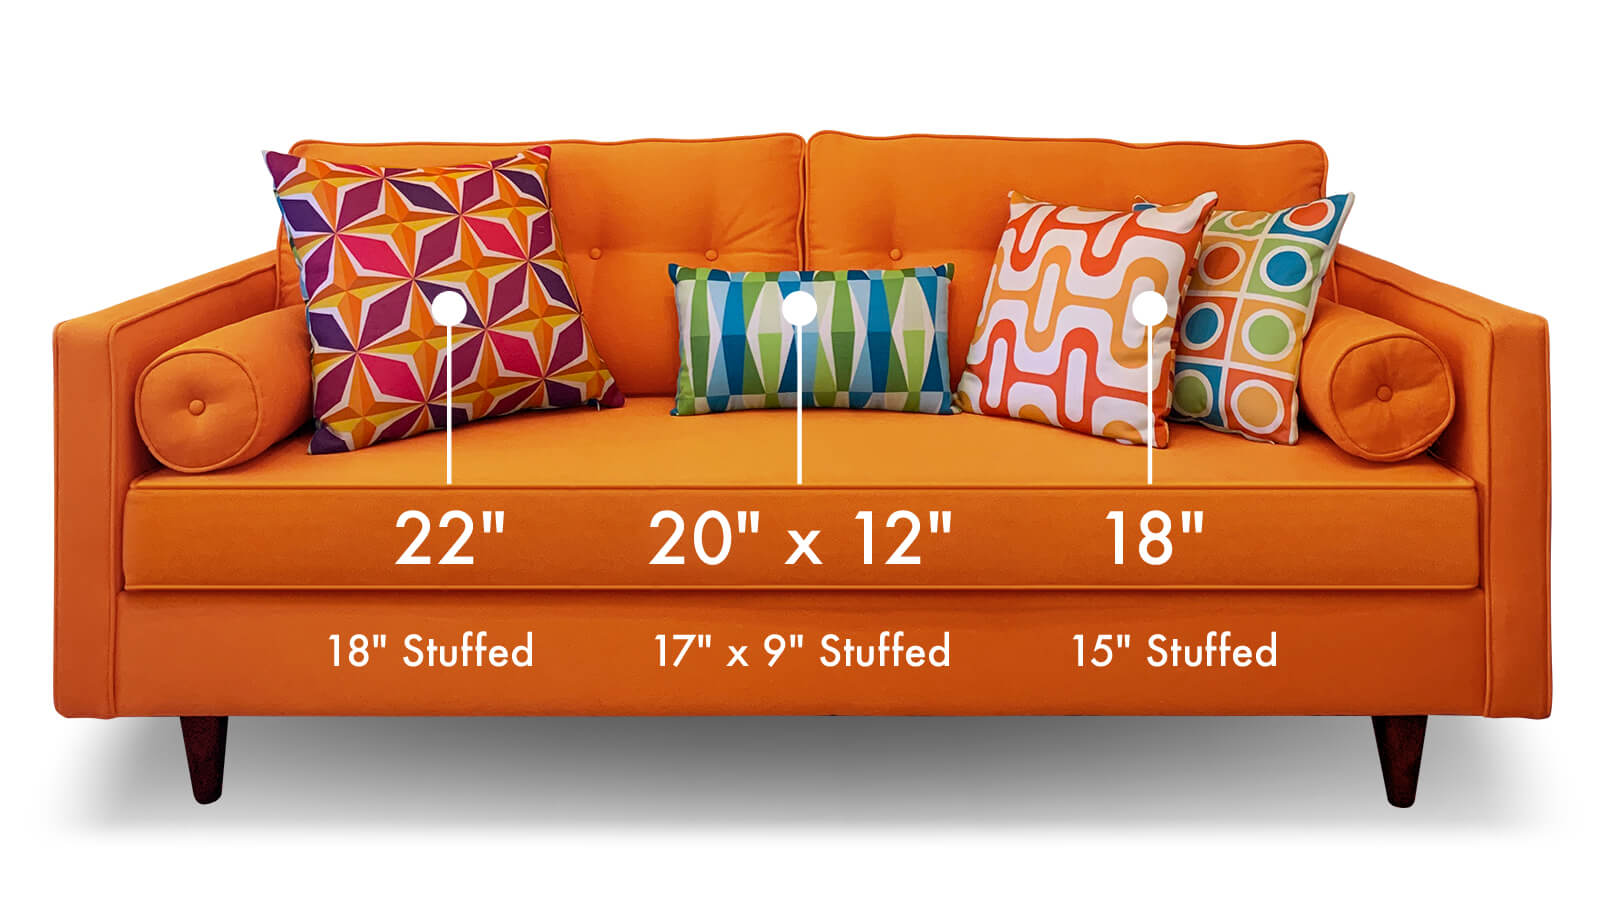 Mid-century modern throw pillows measurements selector on a couch